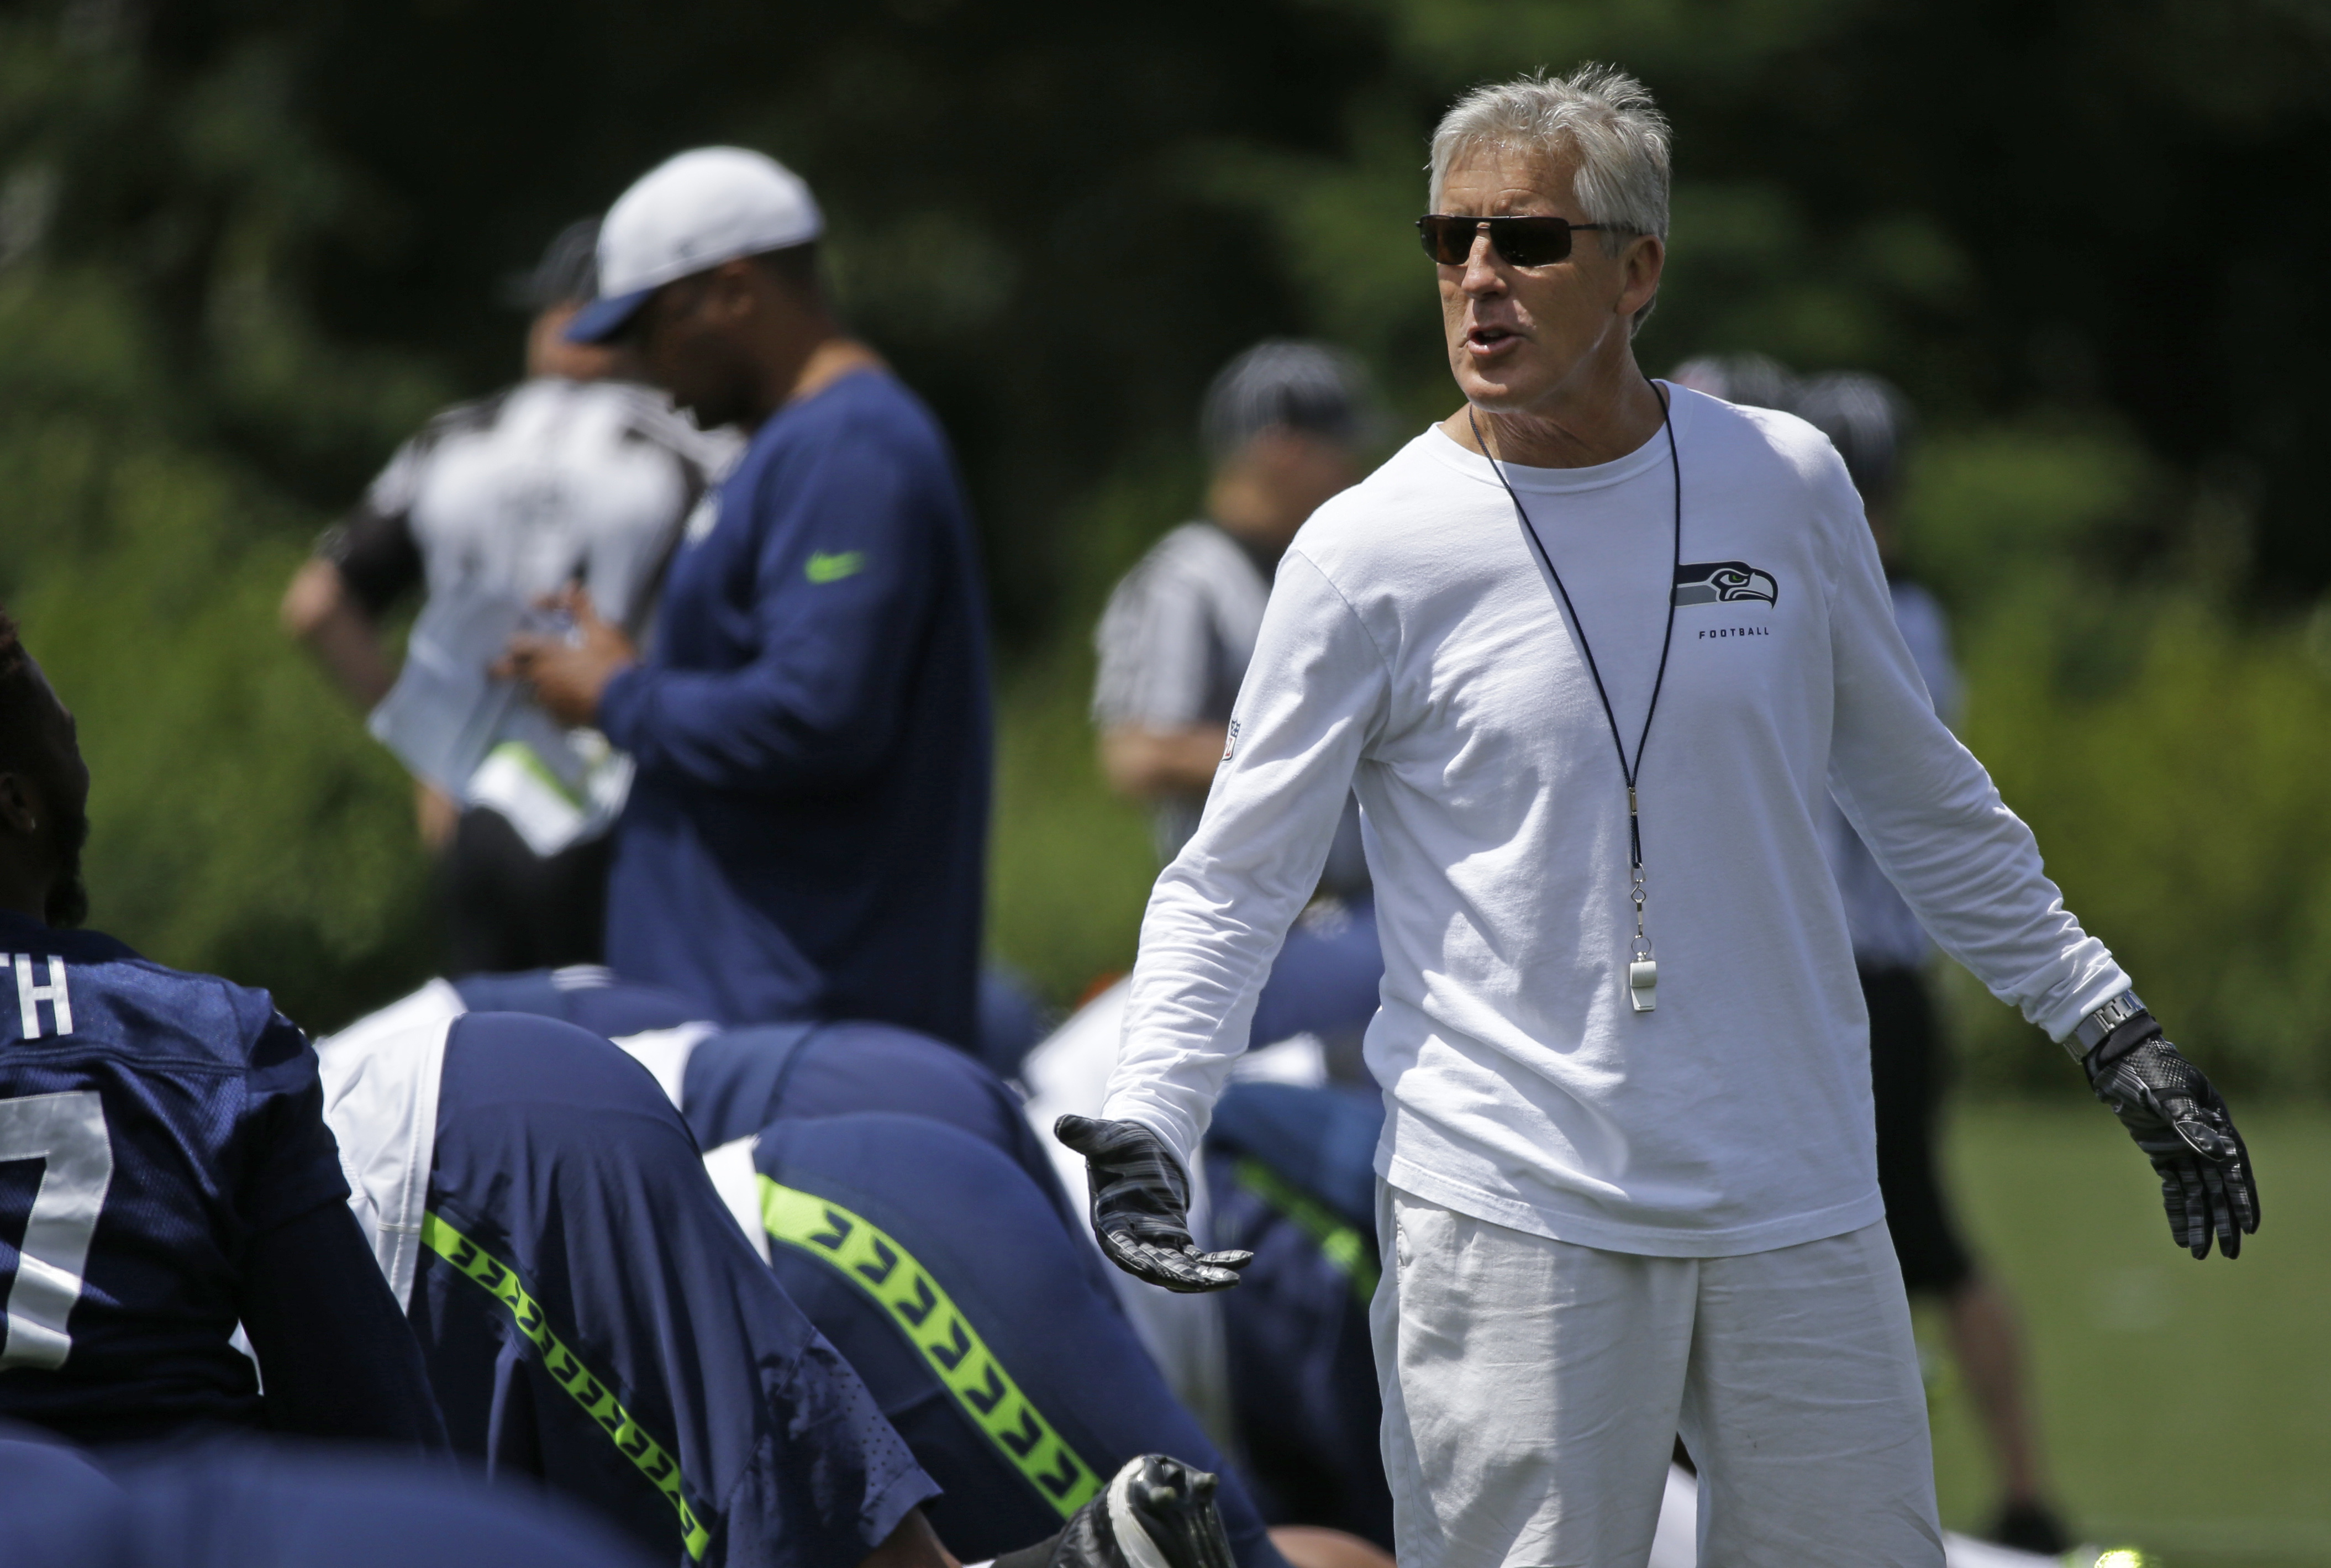 Seattle Seahawks head coach Pete Carroll looks on as players stretch before NFL football practice, Wednesday, June 15, 2016, in Renton, Wash. (AP Photo/Ted S. Warren)